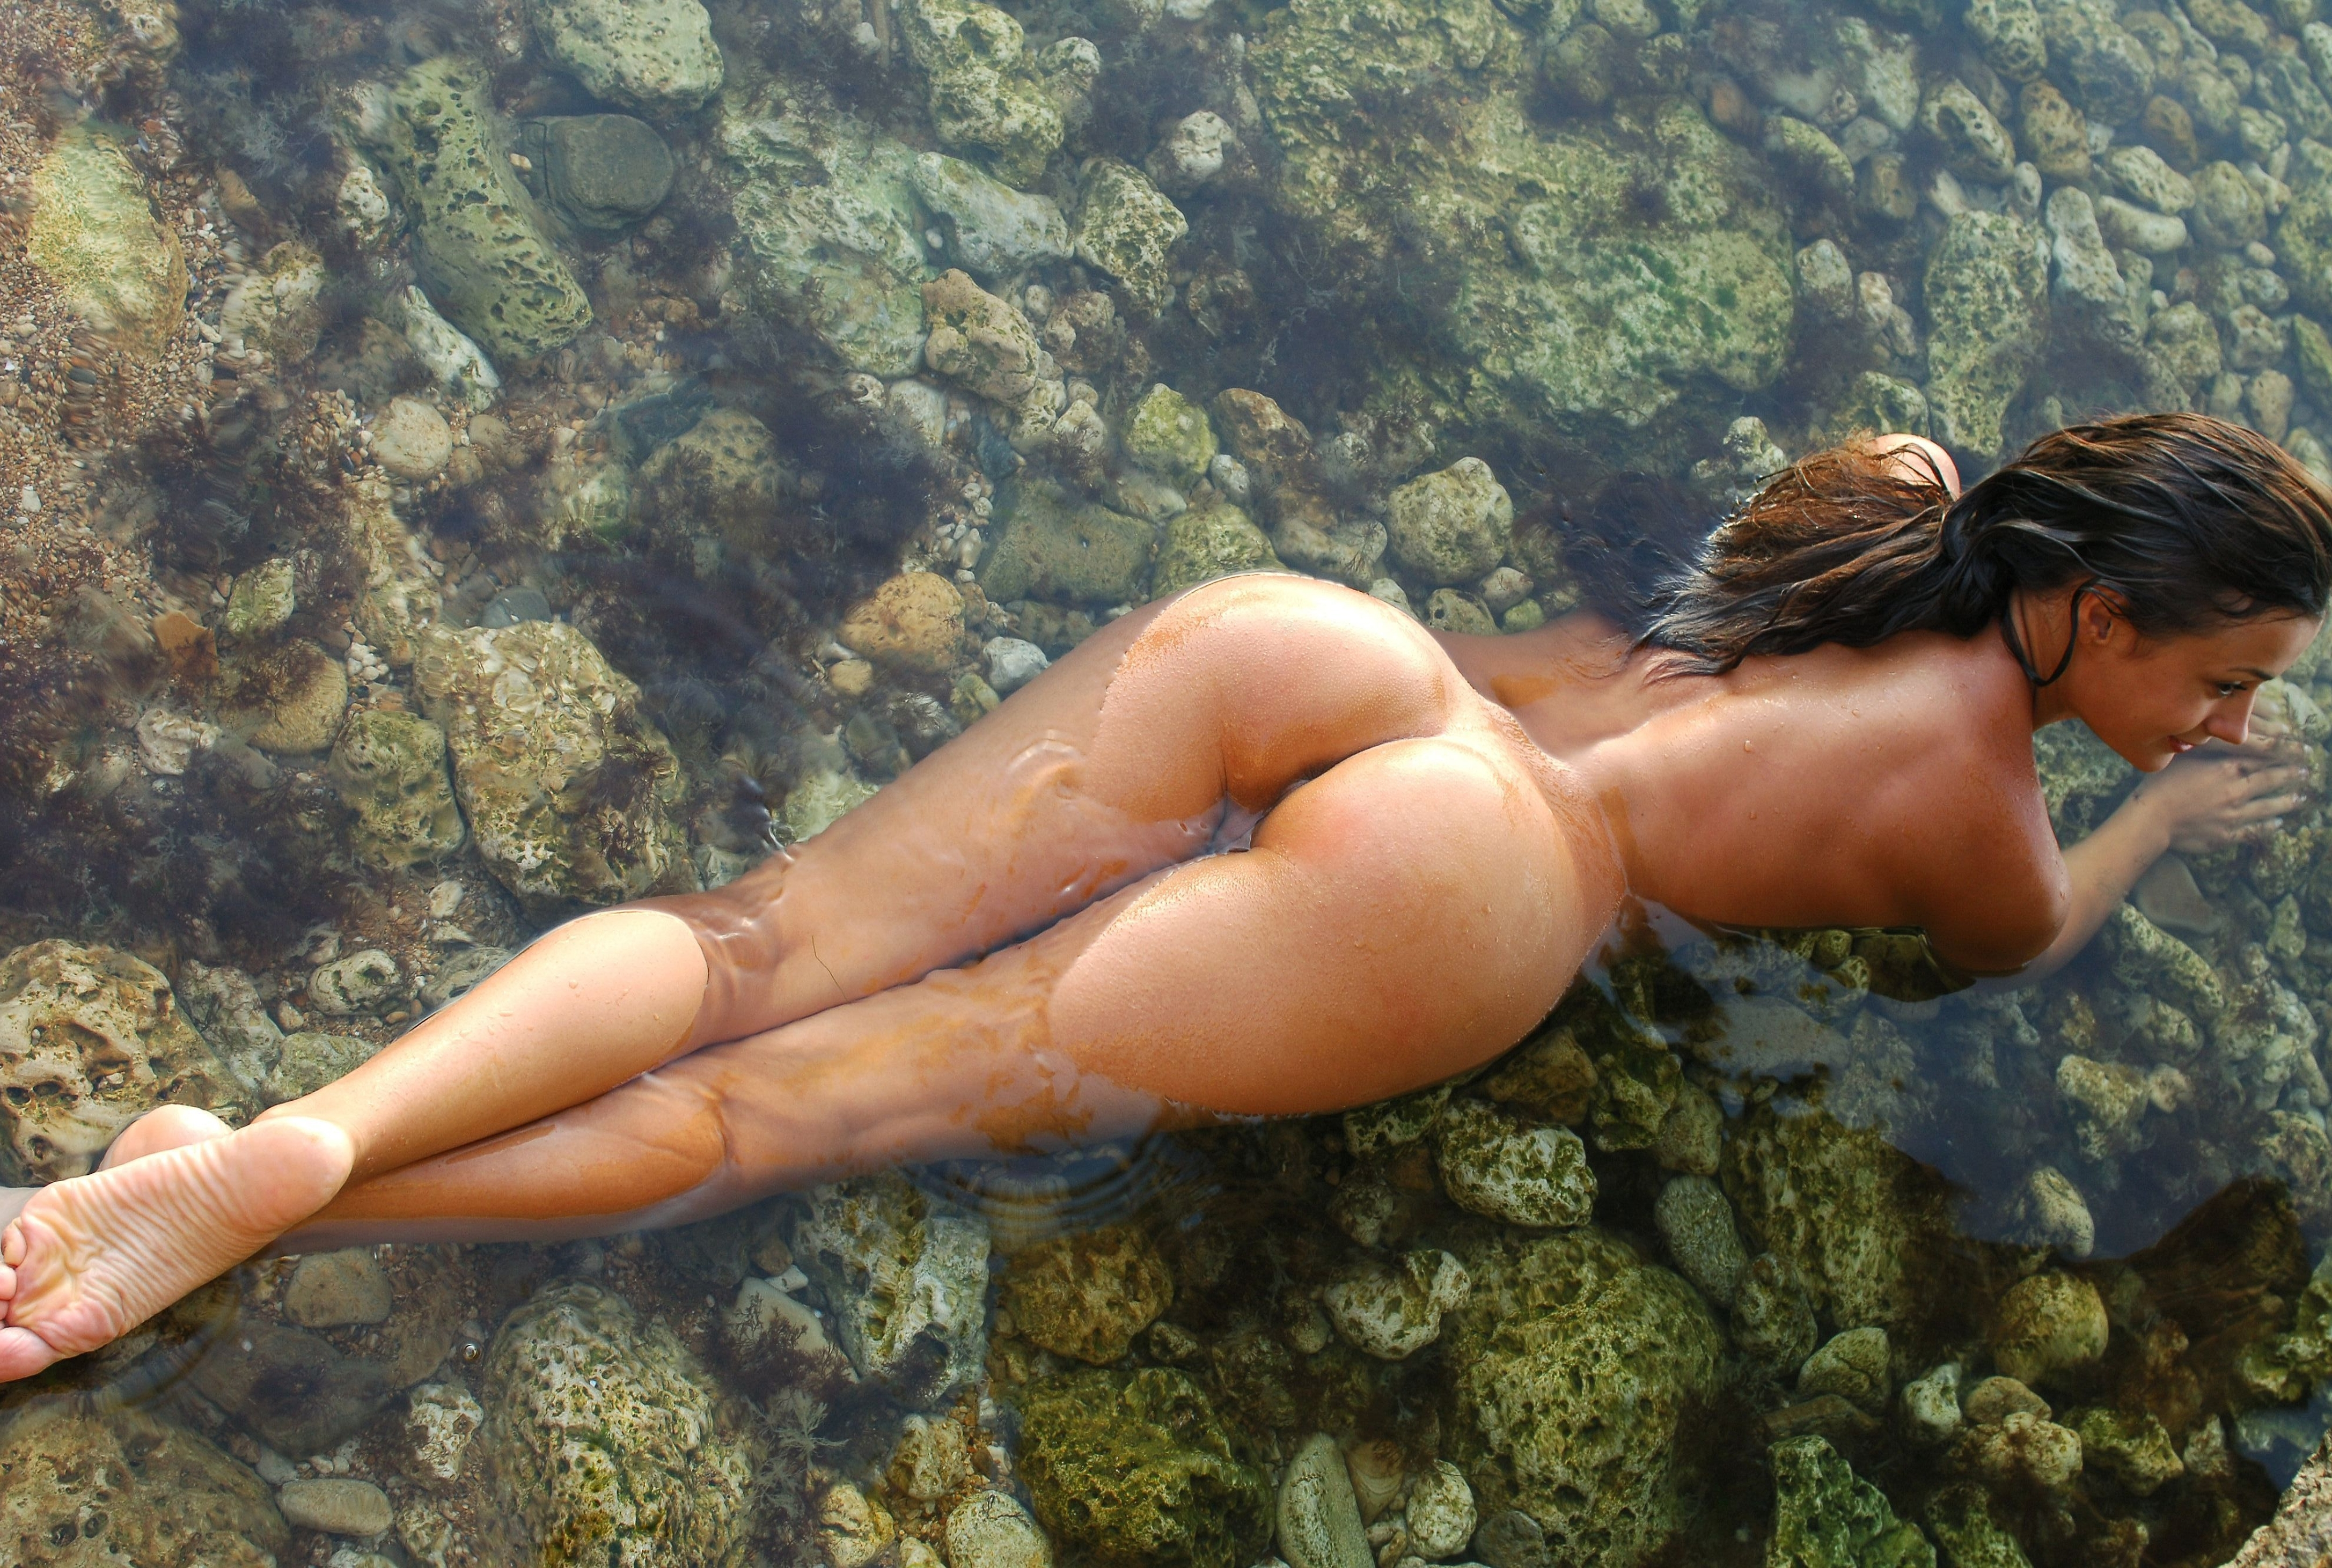 blowjob-hot-naked-women-in-the-water-hot-asian